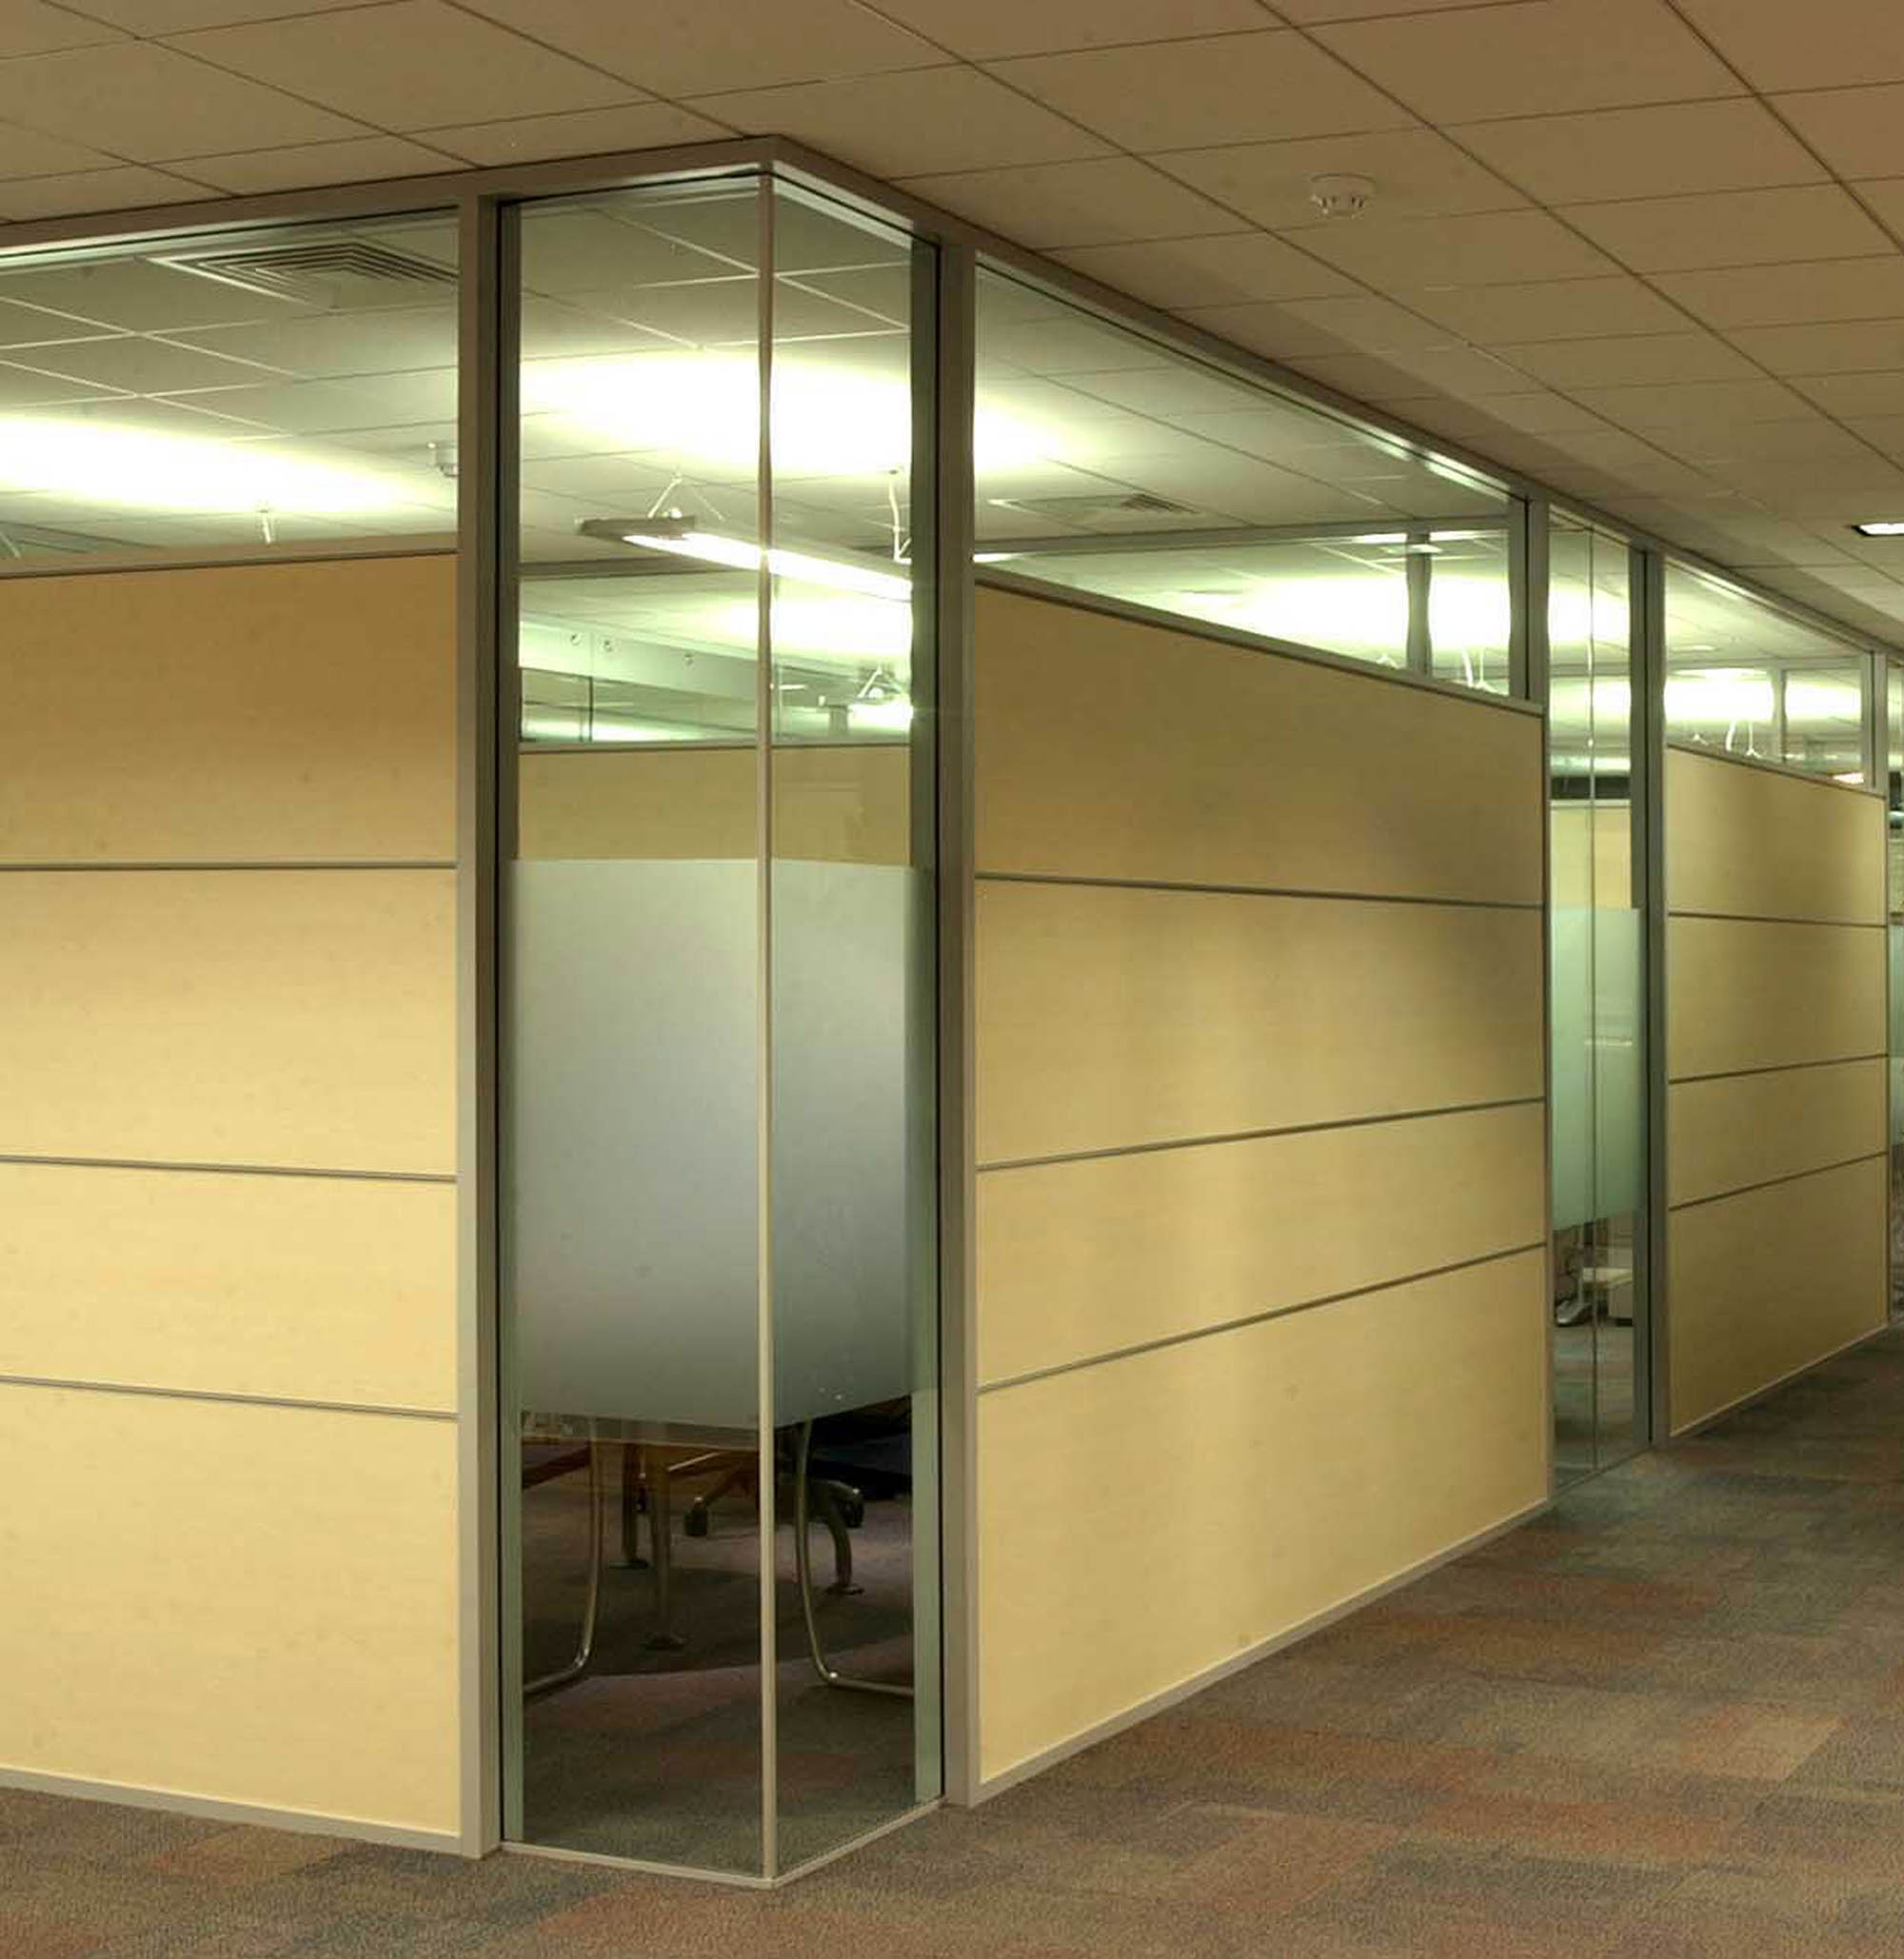 glass wall door systems image collections glass door interior